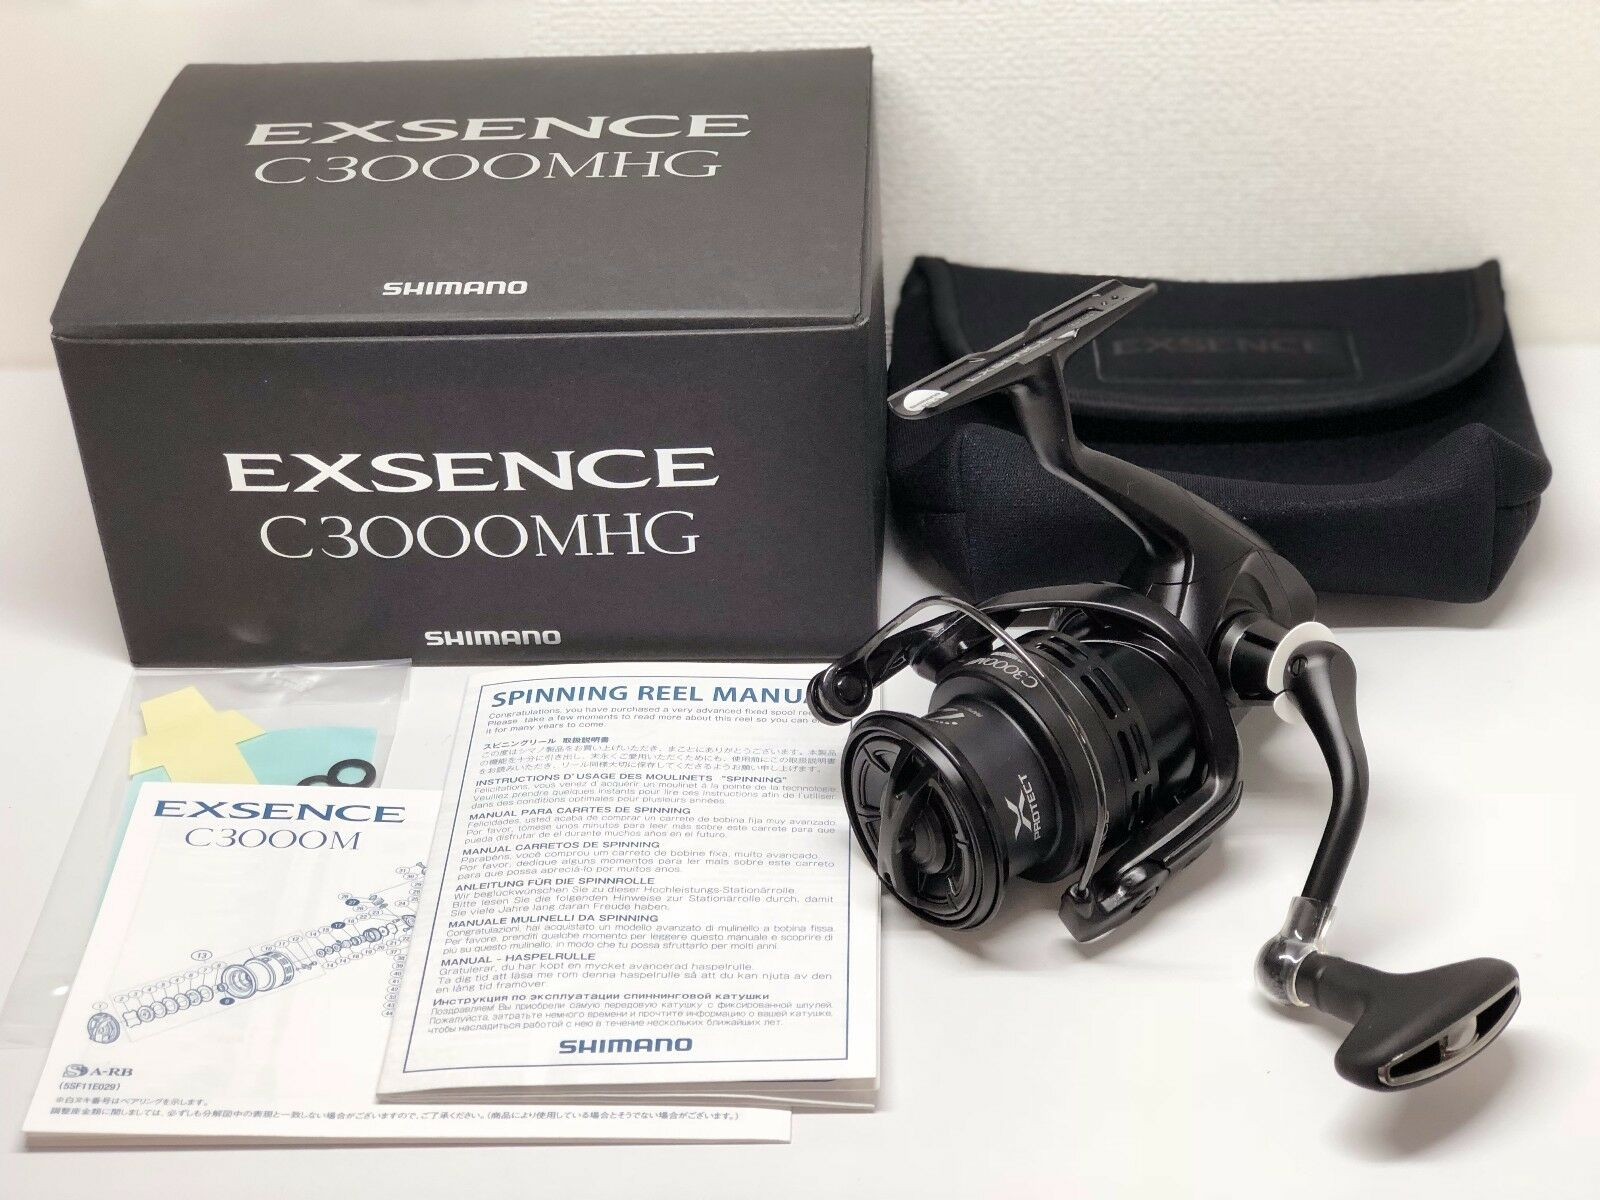 SHIMANO 17 EXSENCE C3000MHG   - Free Shipping from Japan